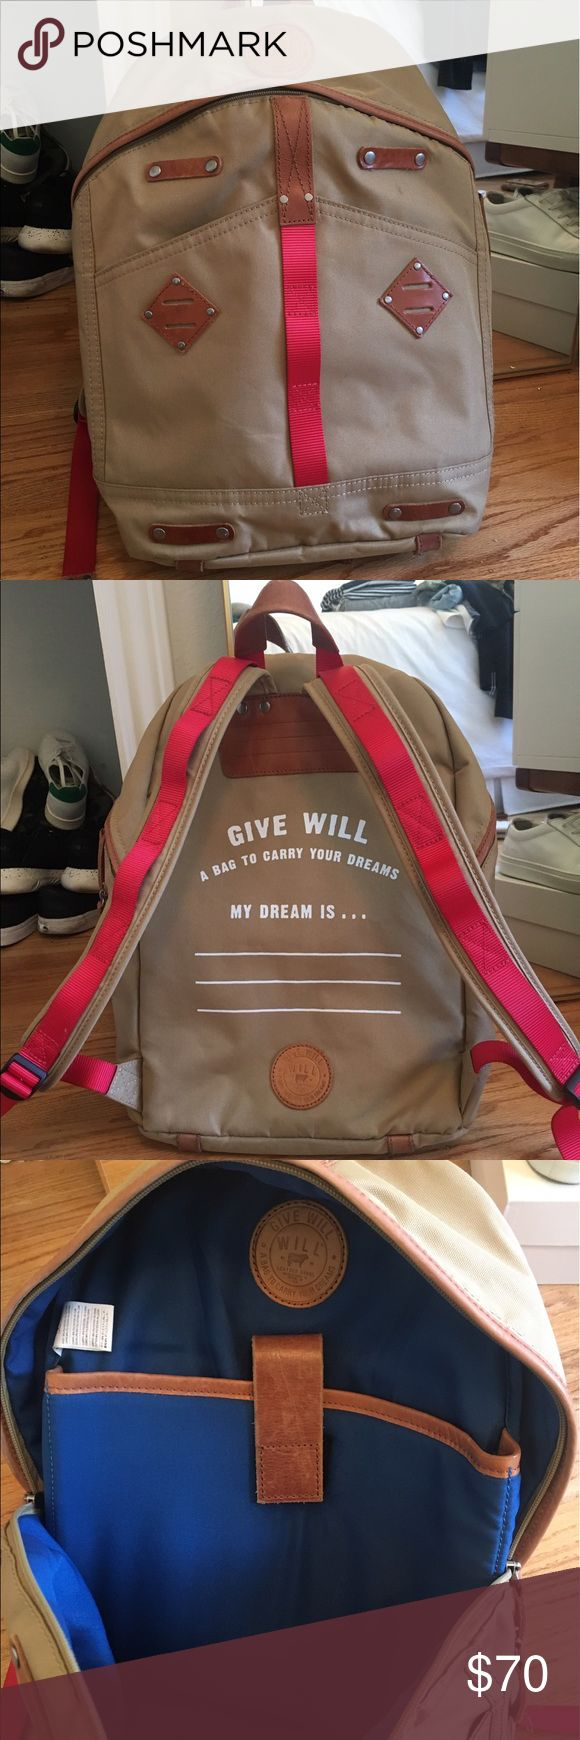 """Will Leather Goods Backpack Purchased in Portland and only used for a couple weeks, this back pack is sturdy and will wear well. Has interior laptop pocket (up to 13""""), interior zip pocket and pen/supply pockets. One exterior side zip pocket (perfect for wallet), and two slip-in pocket on the outside front. Great backpack made by a cool company. Will Leather Goods Bags Backpacks"""